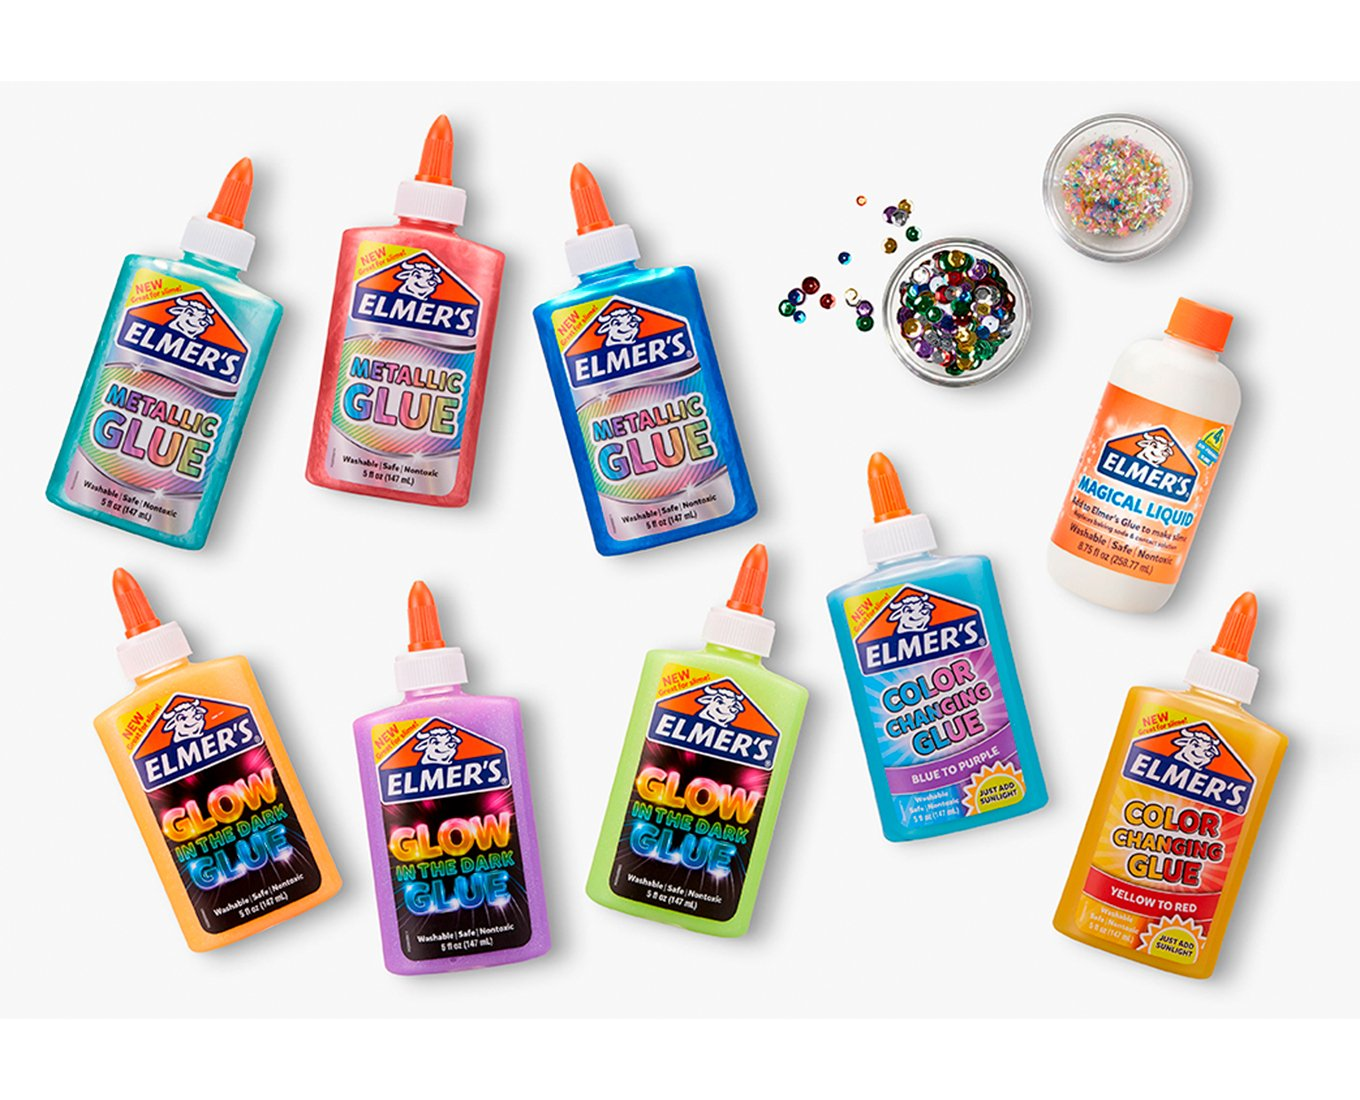 a variety of glue products and glitter